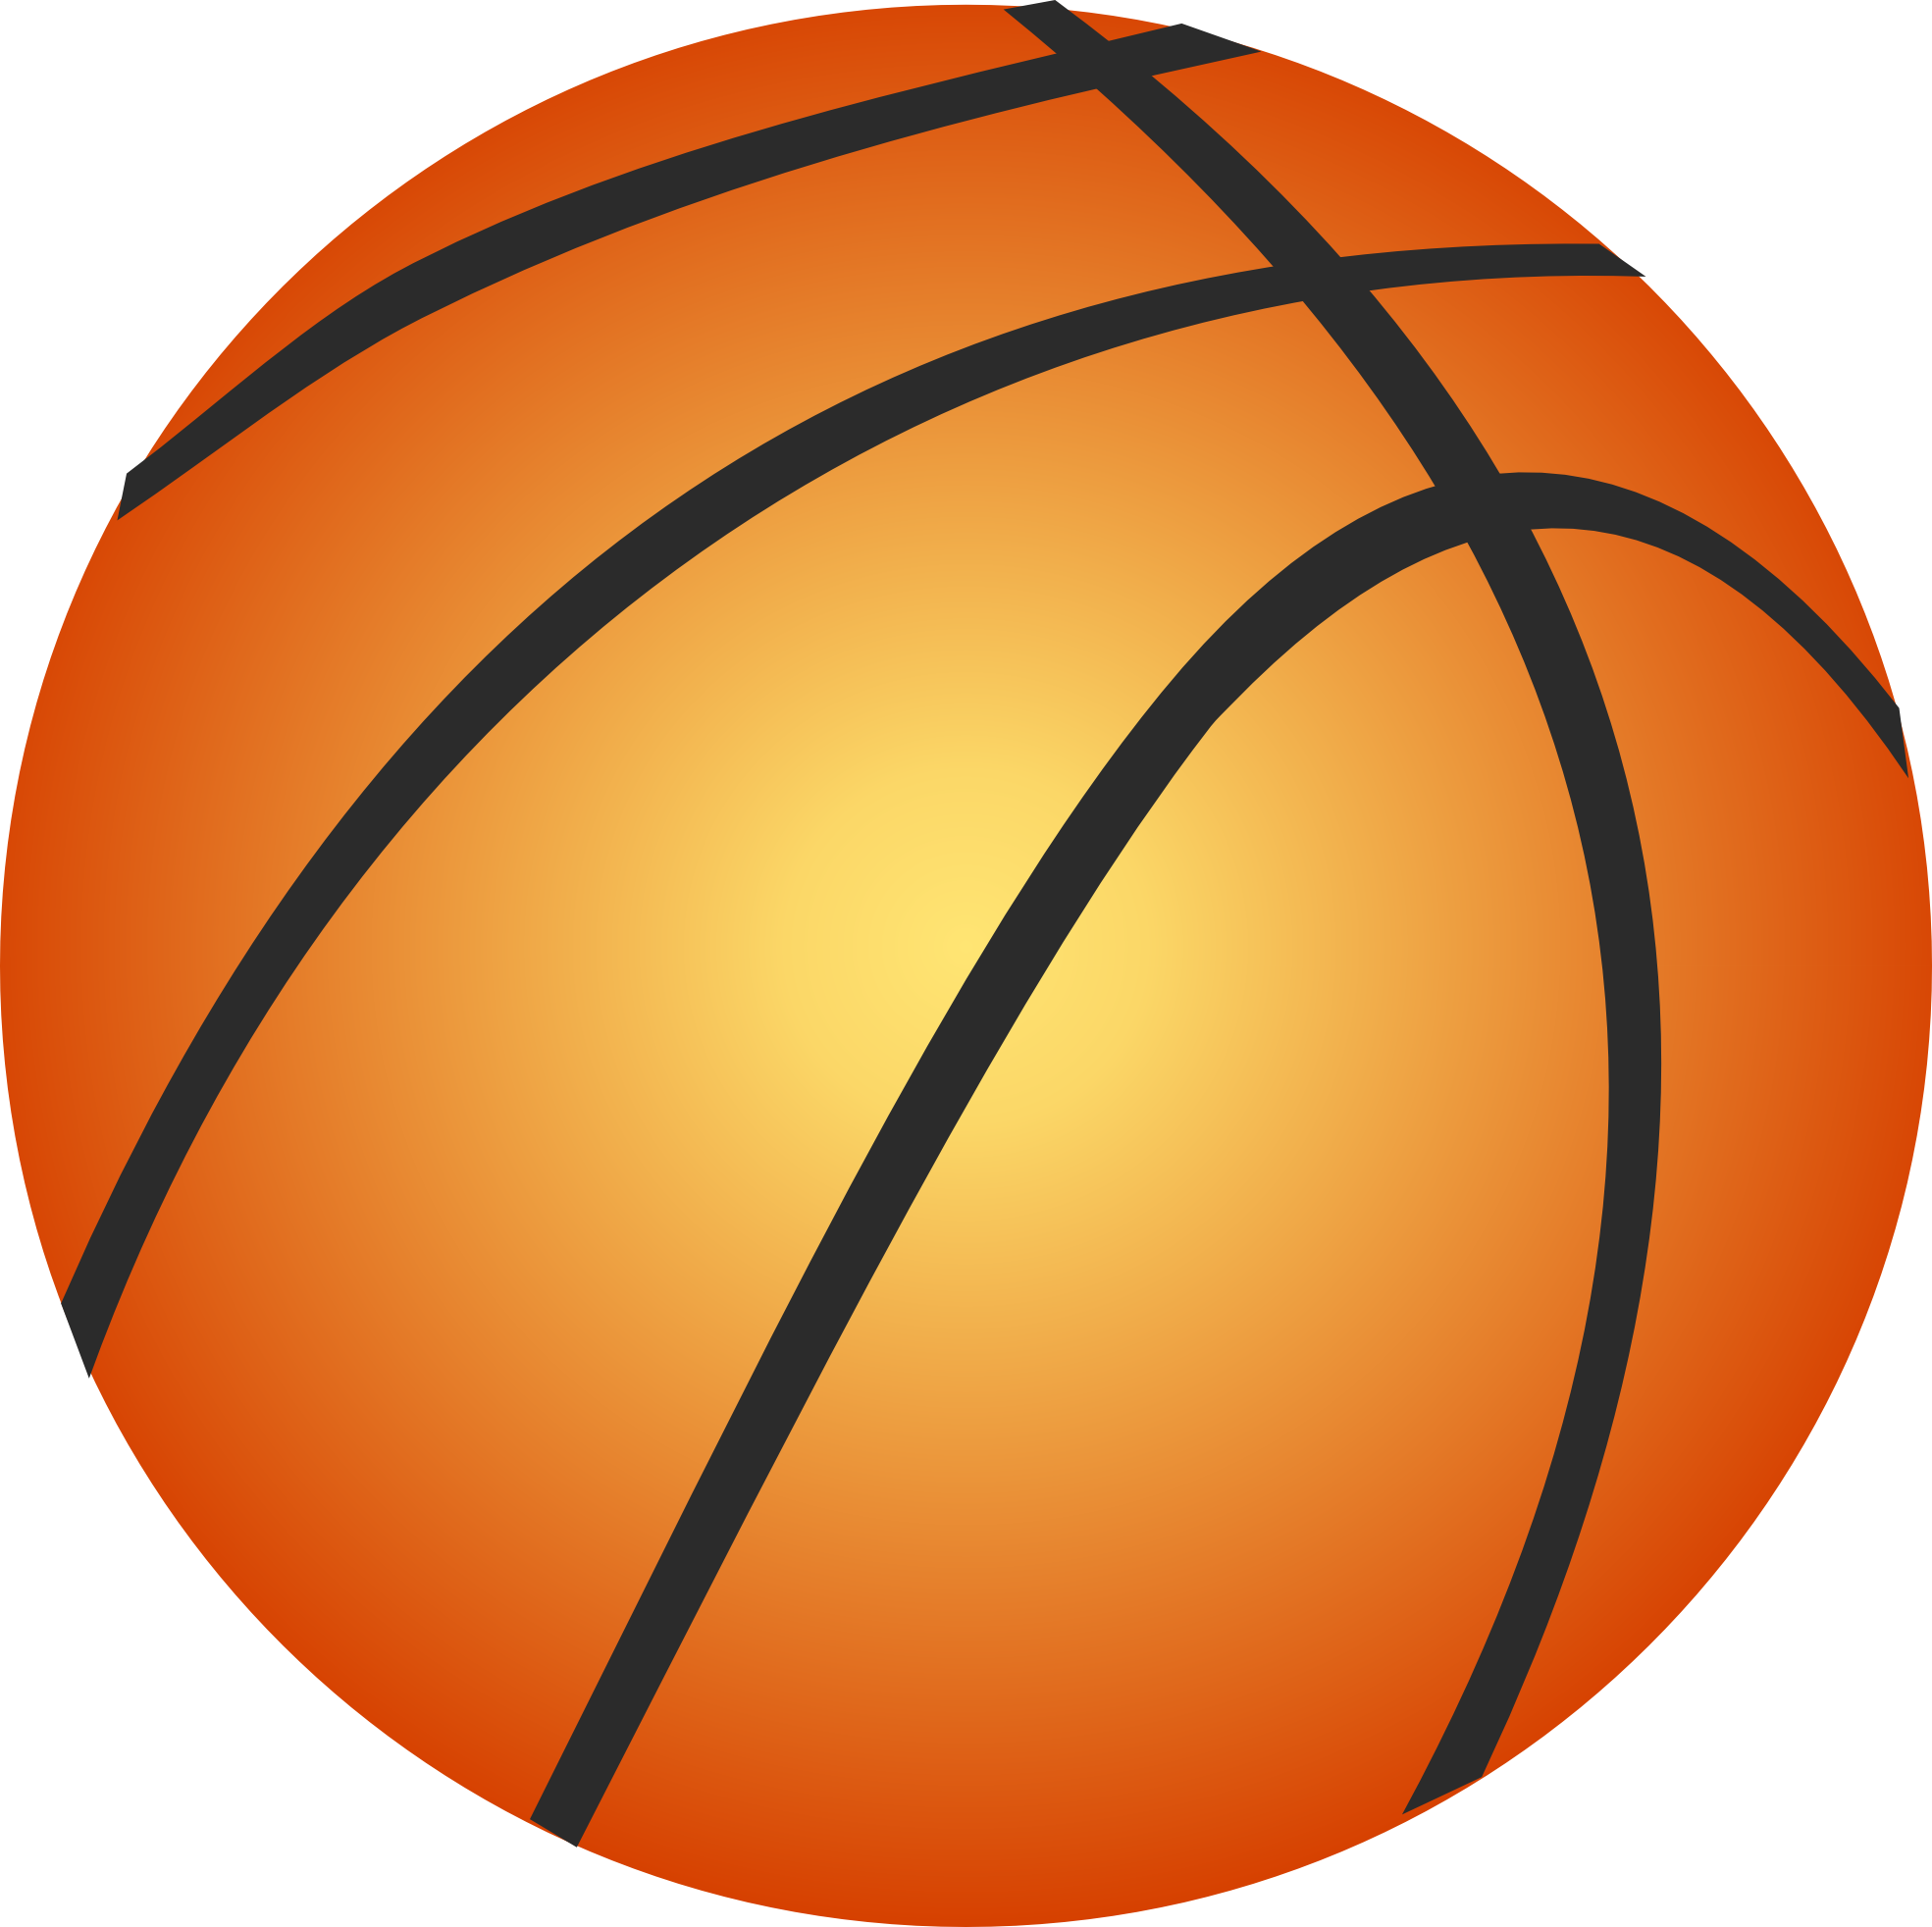 clip art transparent library Basketball clip transparent. Small clipart free on